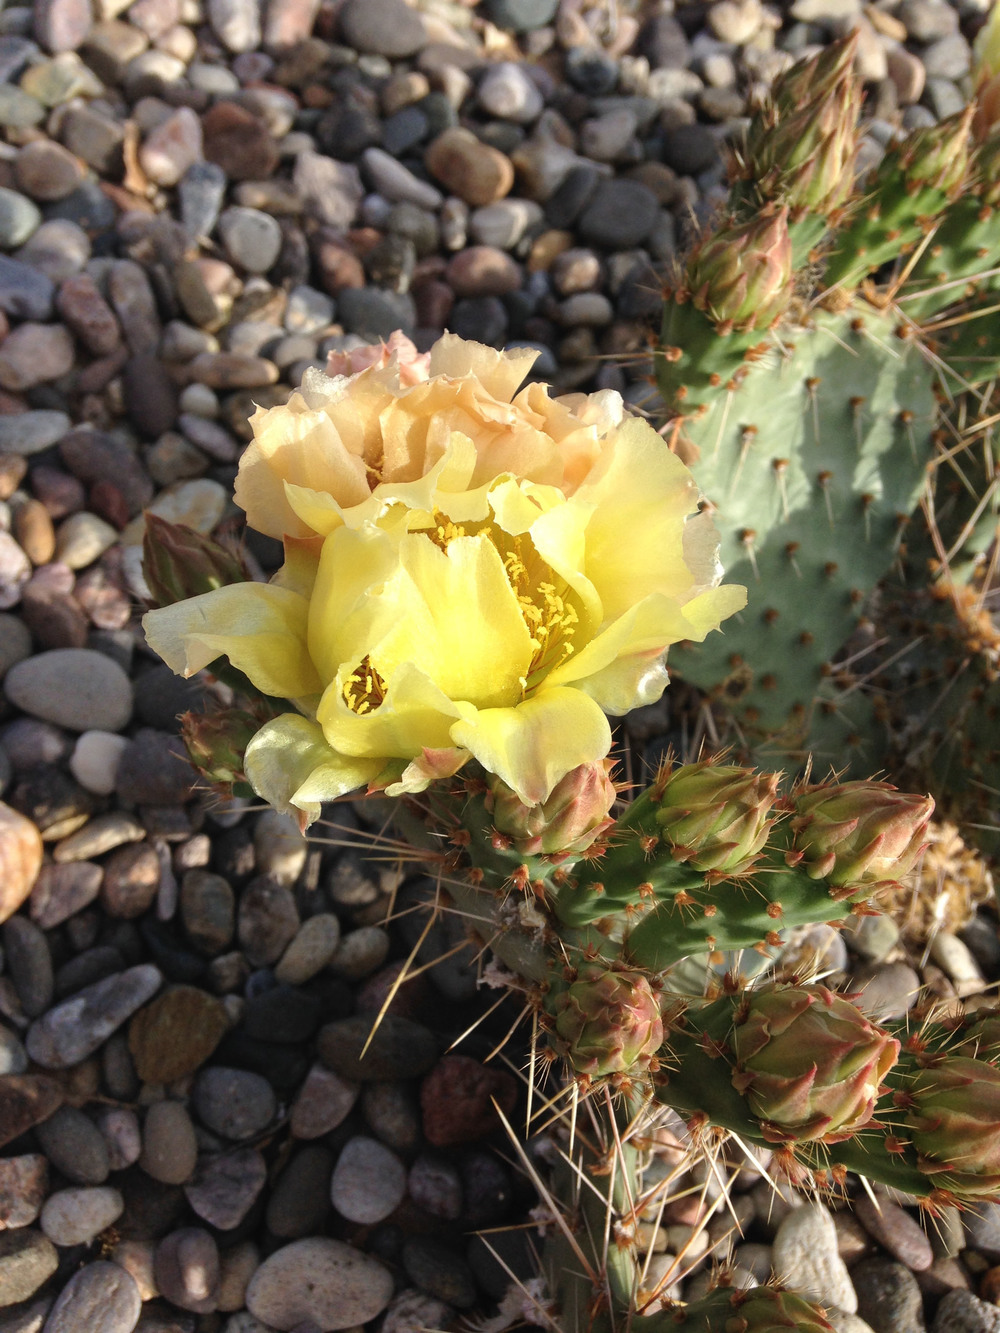 Cactus blooming in the backyard.